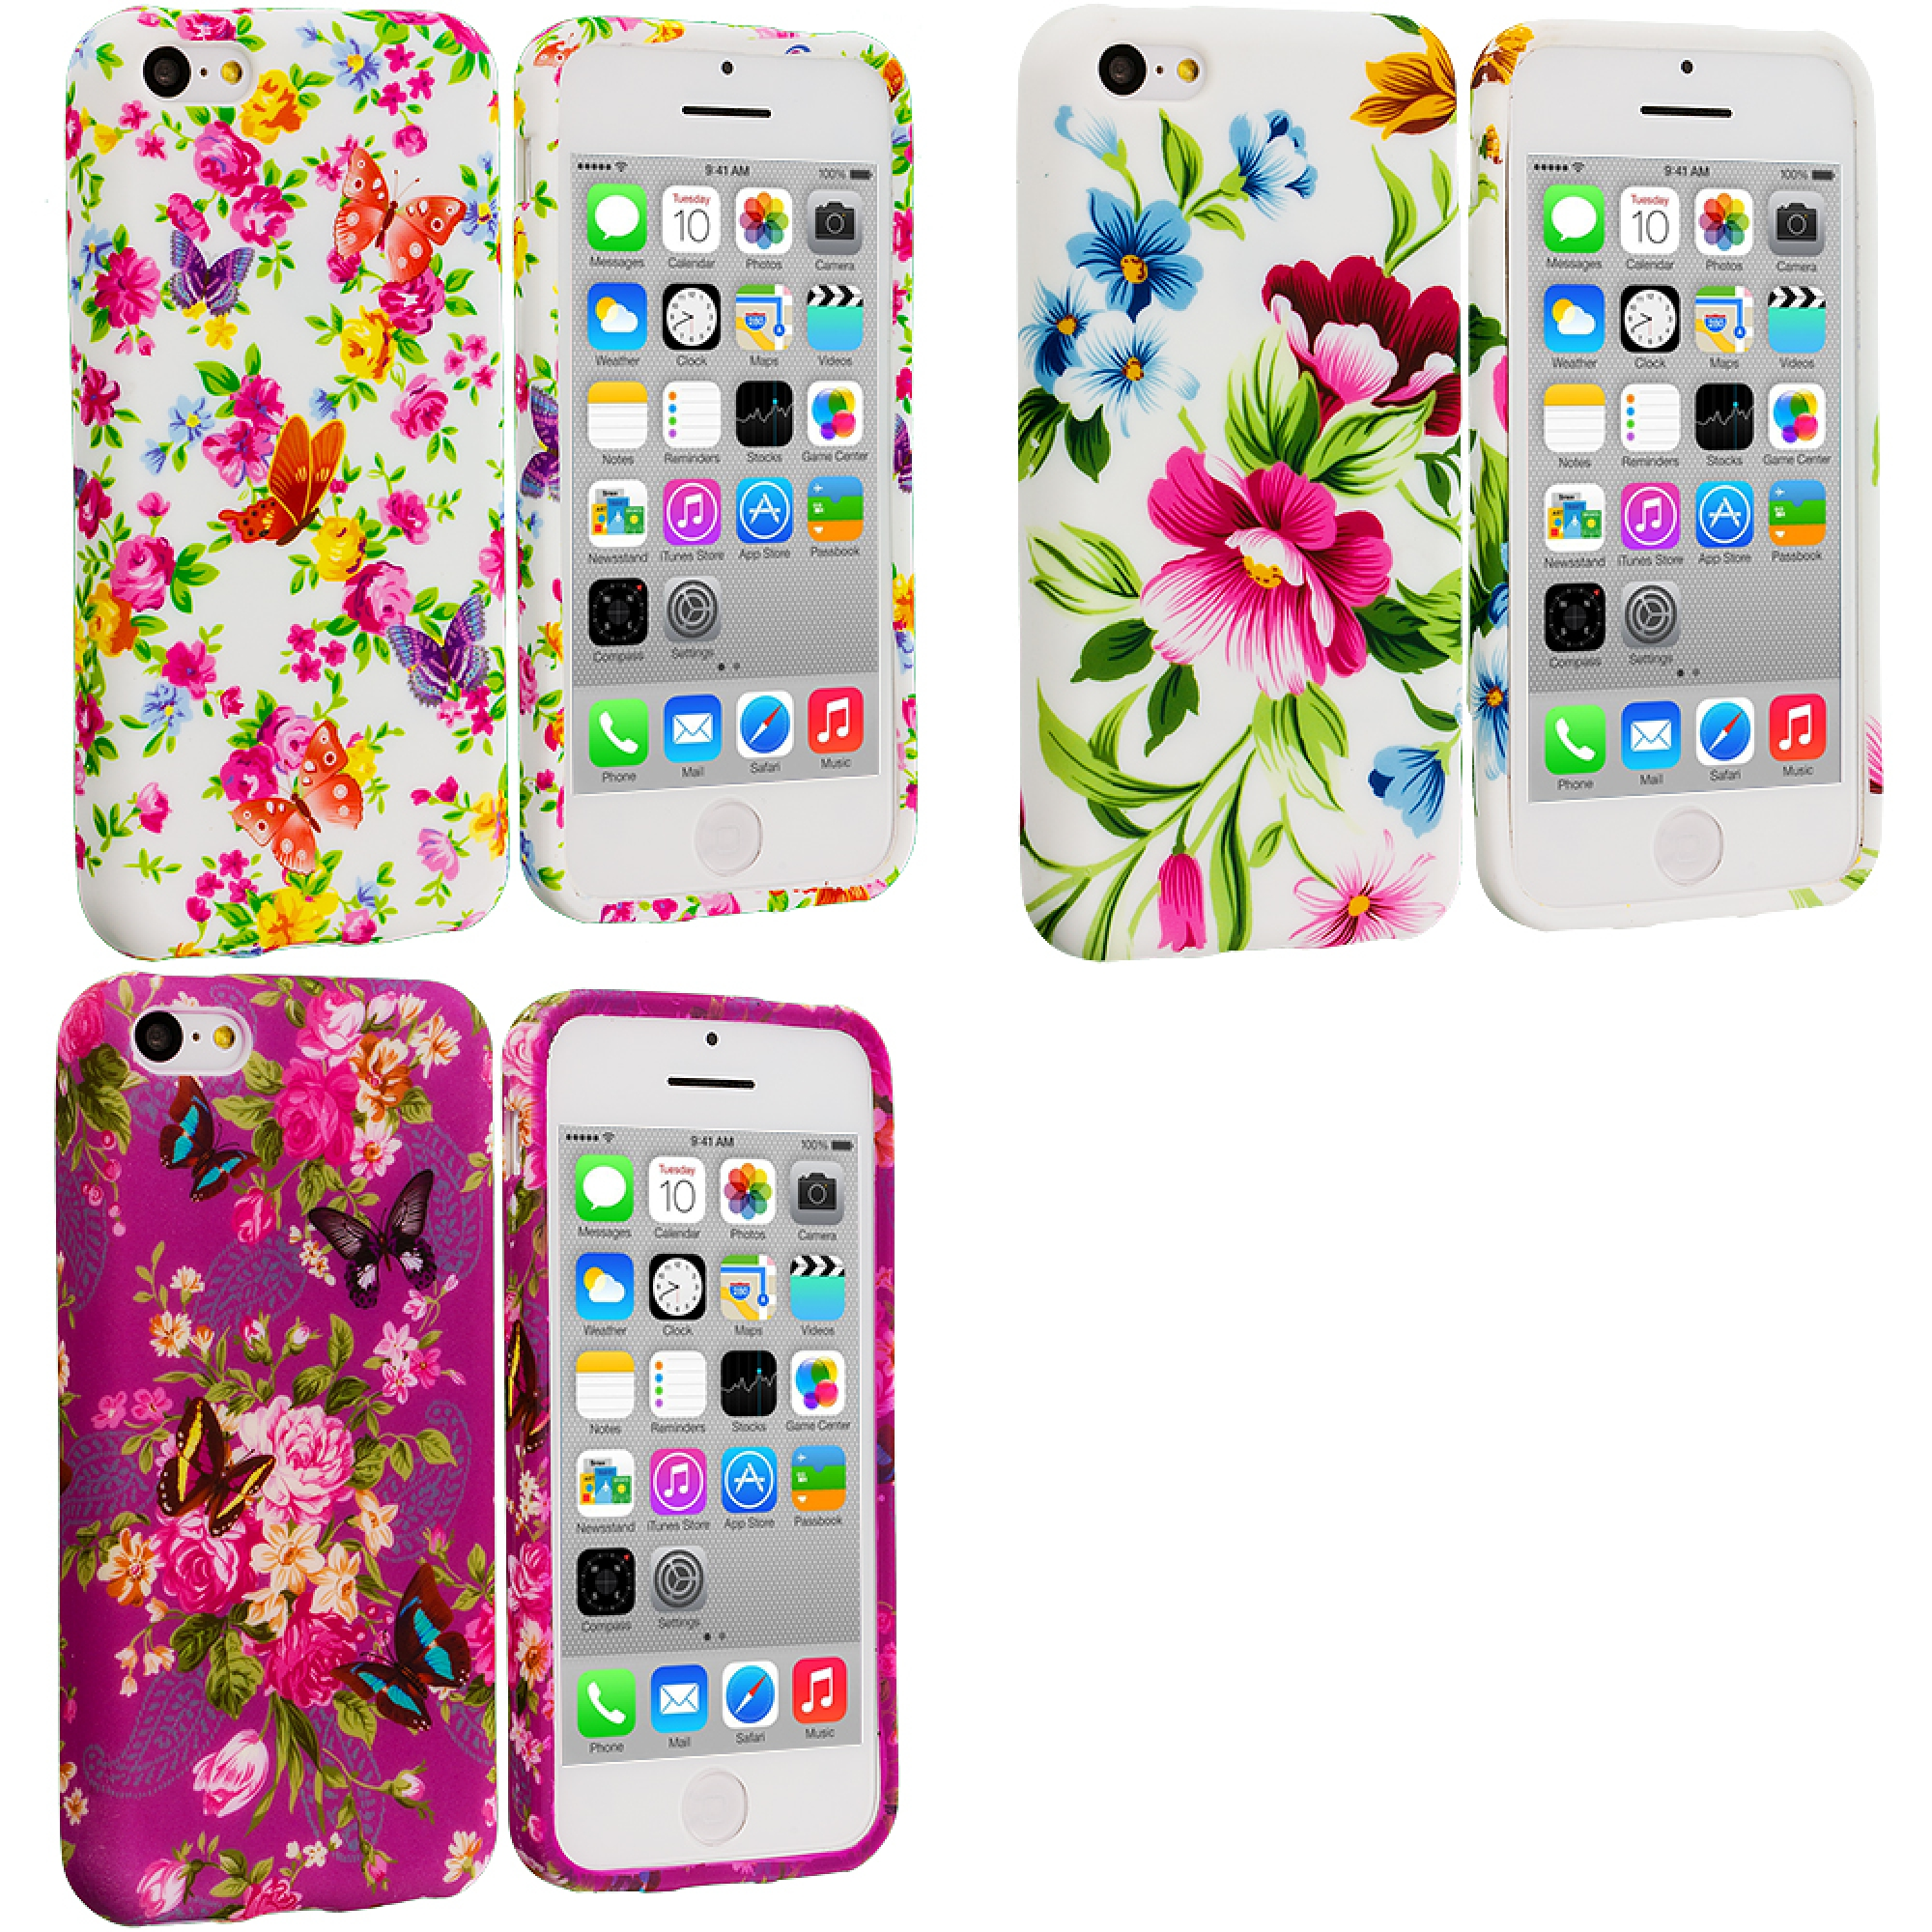 Apple iPhone 5C 3 in 1 Combo Bundle Pack - Flowers TPU Design Soft Case Cover